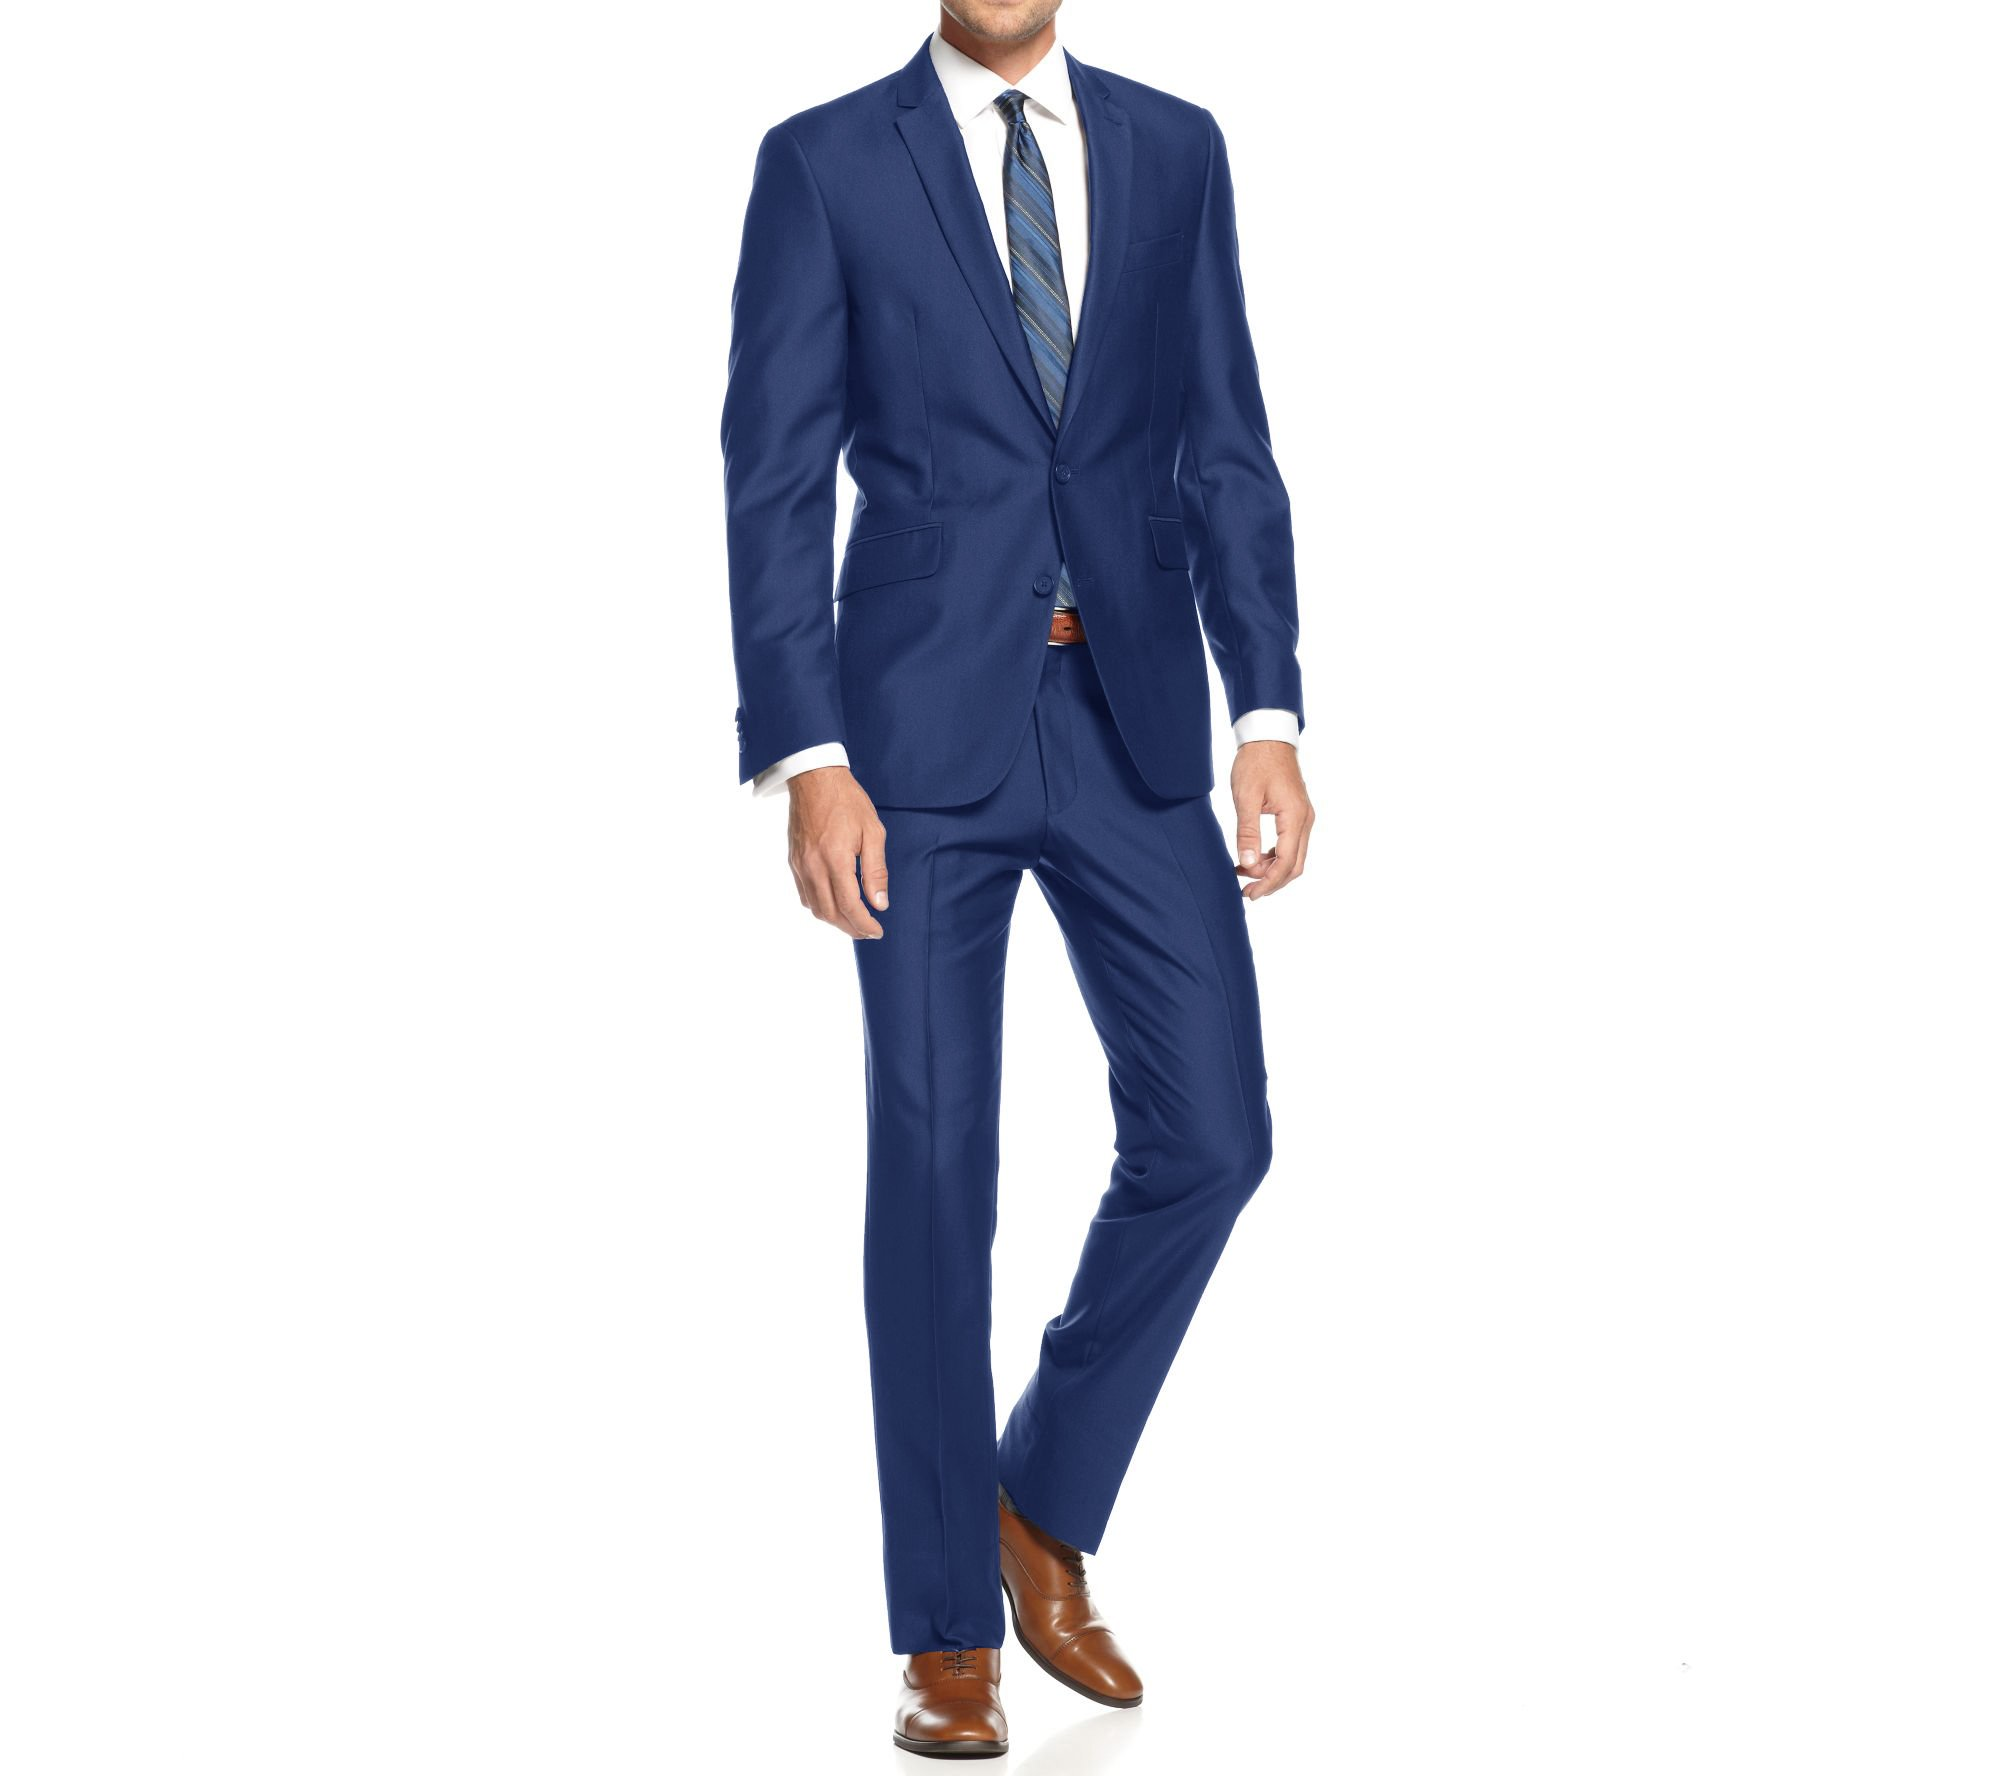 Braveman Mens Slim Fit Single Breasted 2 Piece Suit, Indigo, Size 40S/34W